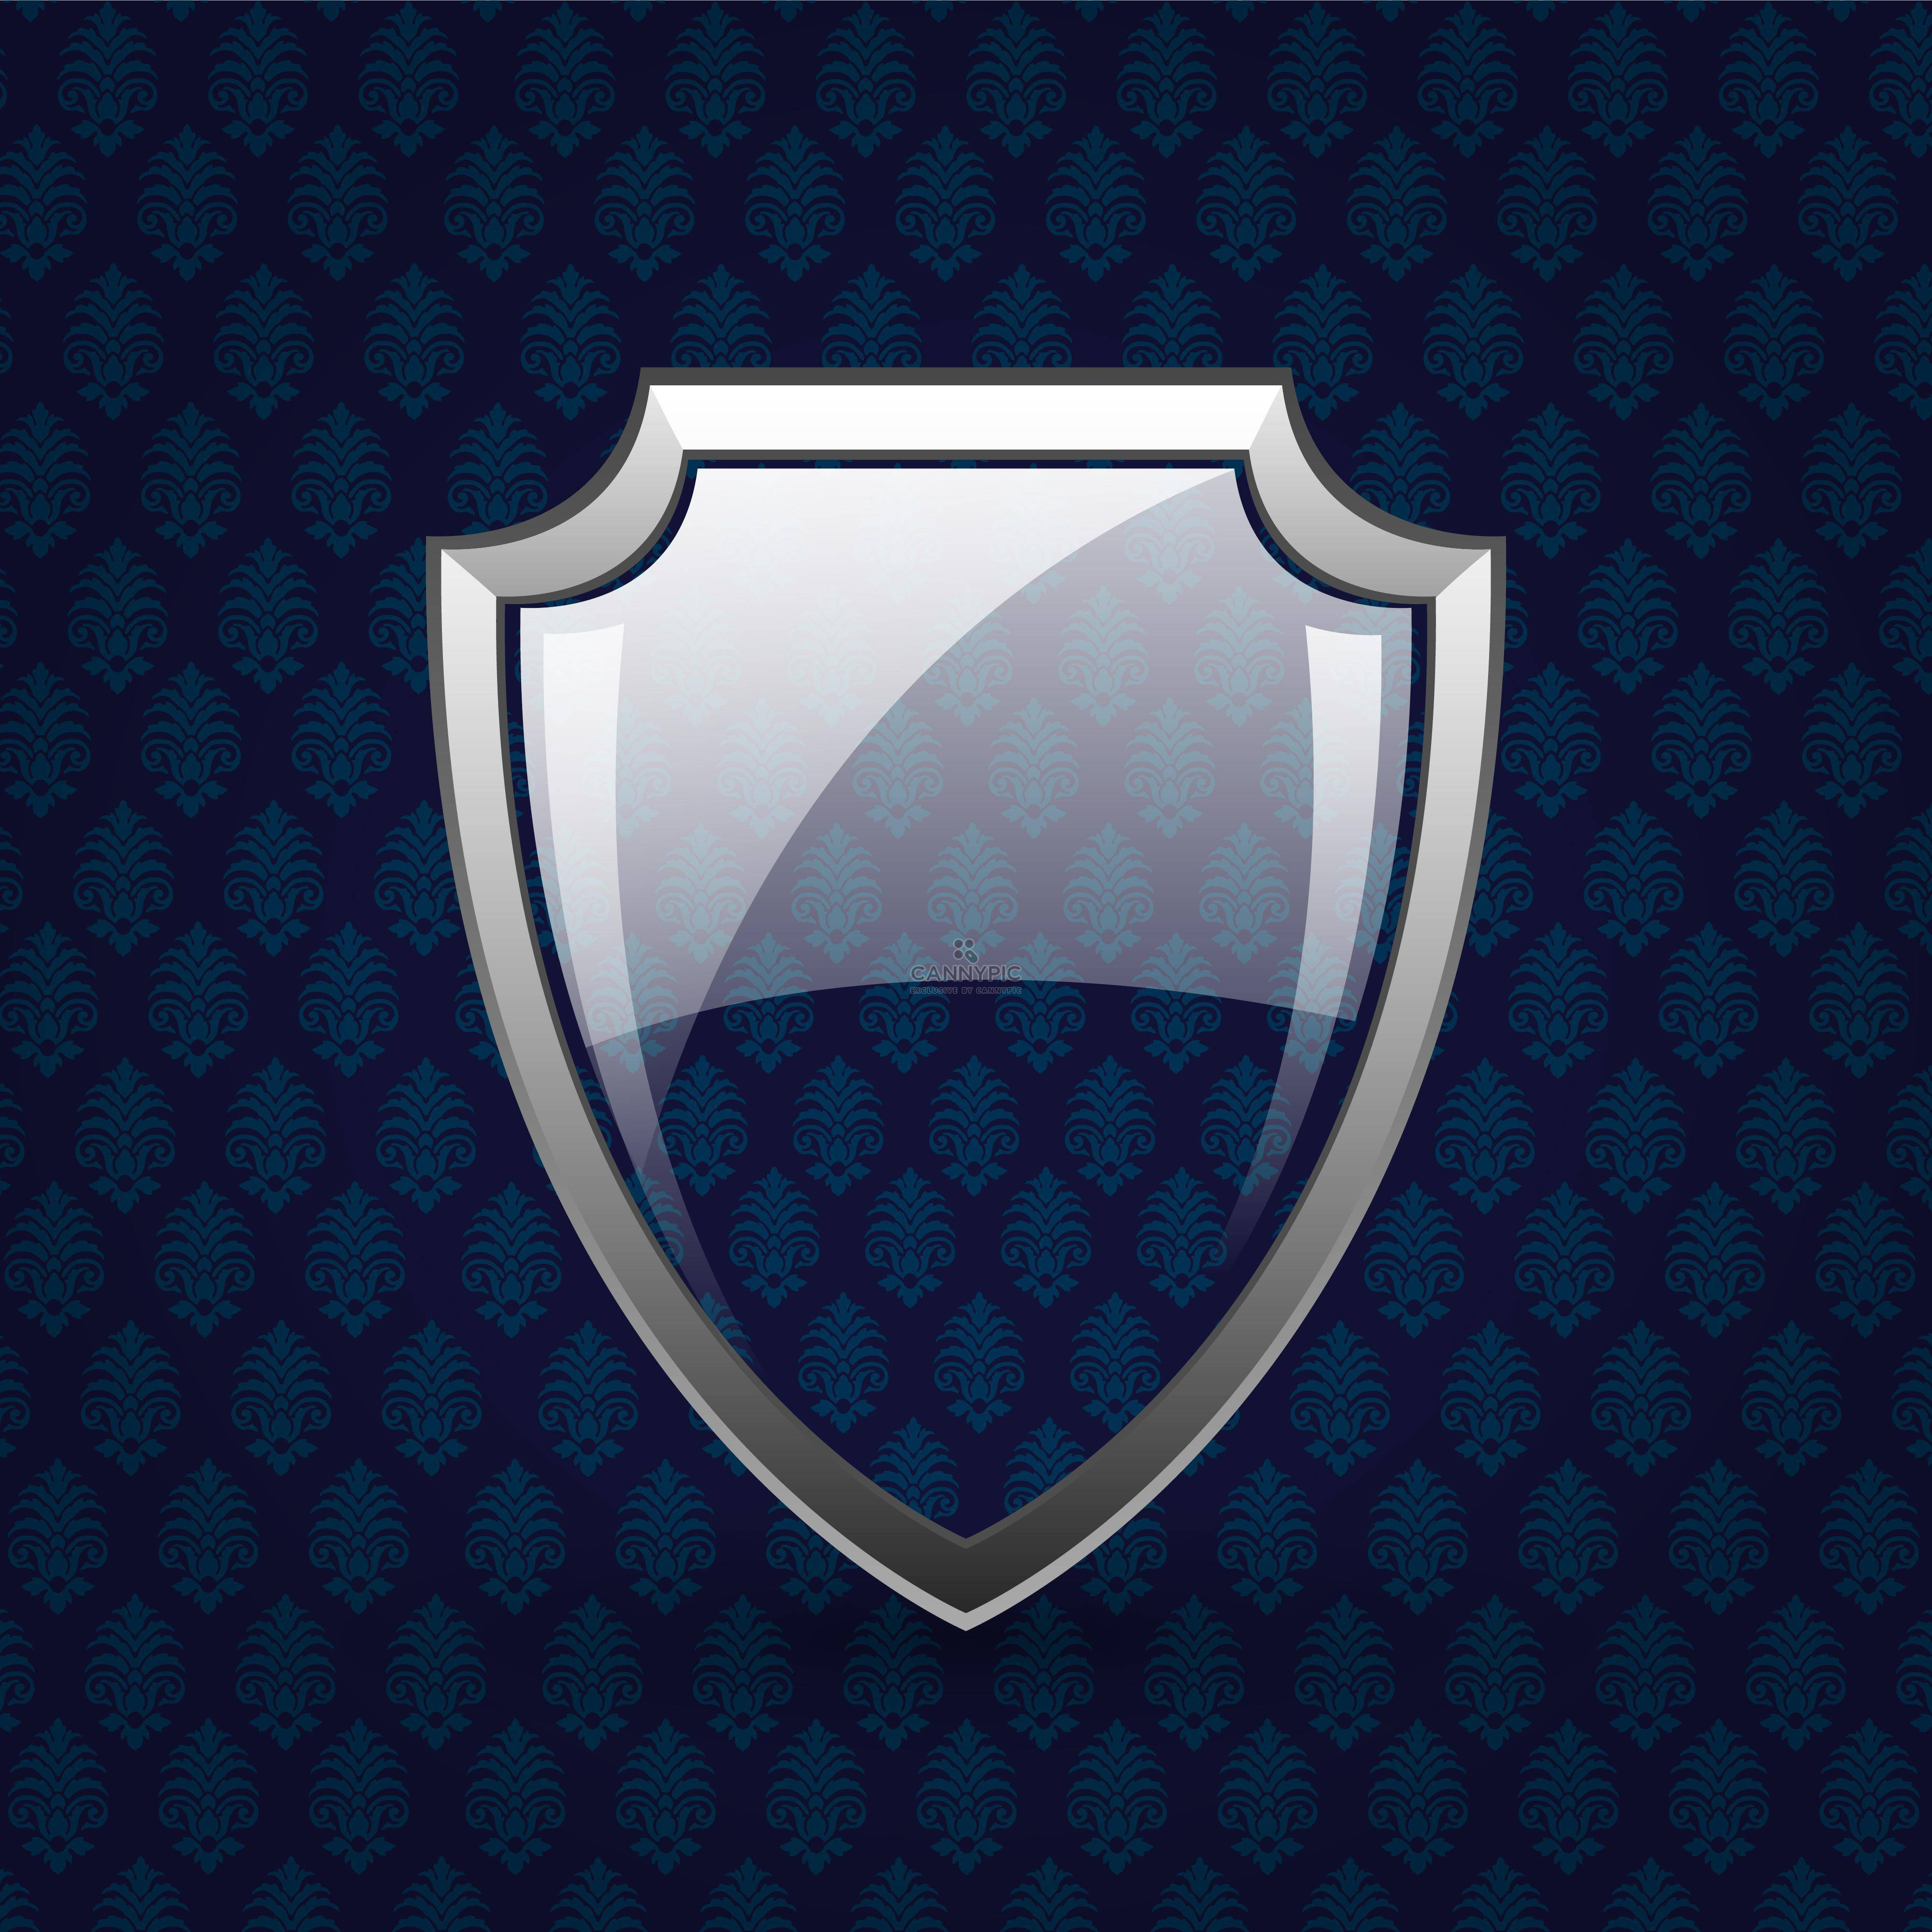 Vector glassy shield on dark background - Free vector #130798